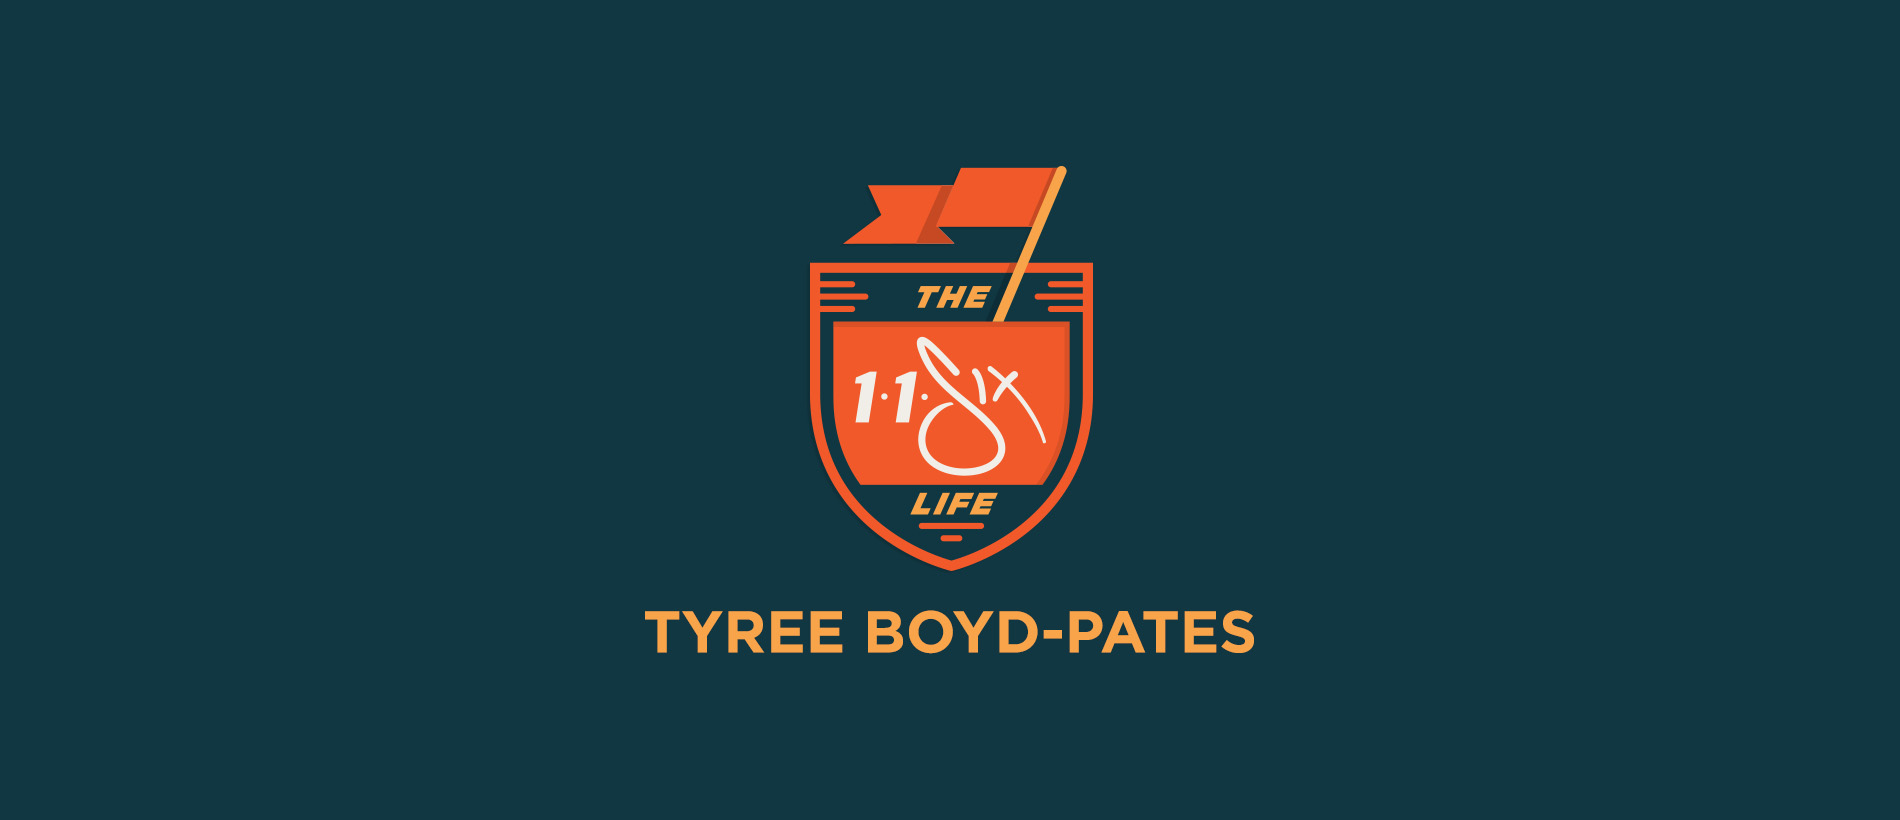 The 116 Life x Tyree Boyd-Pates